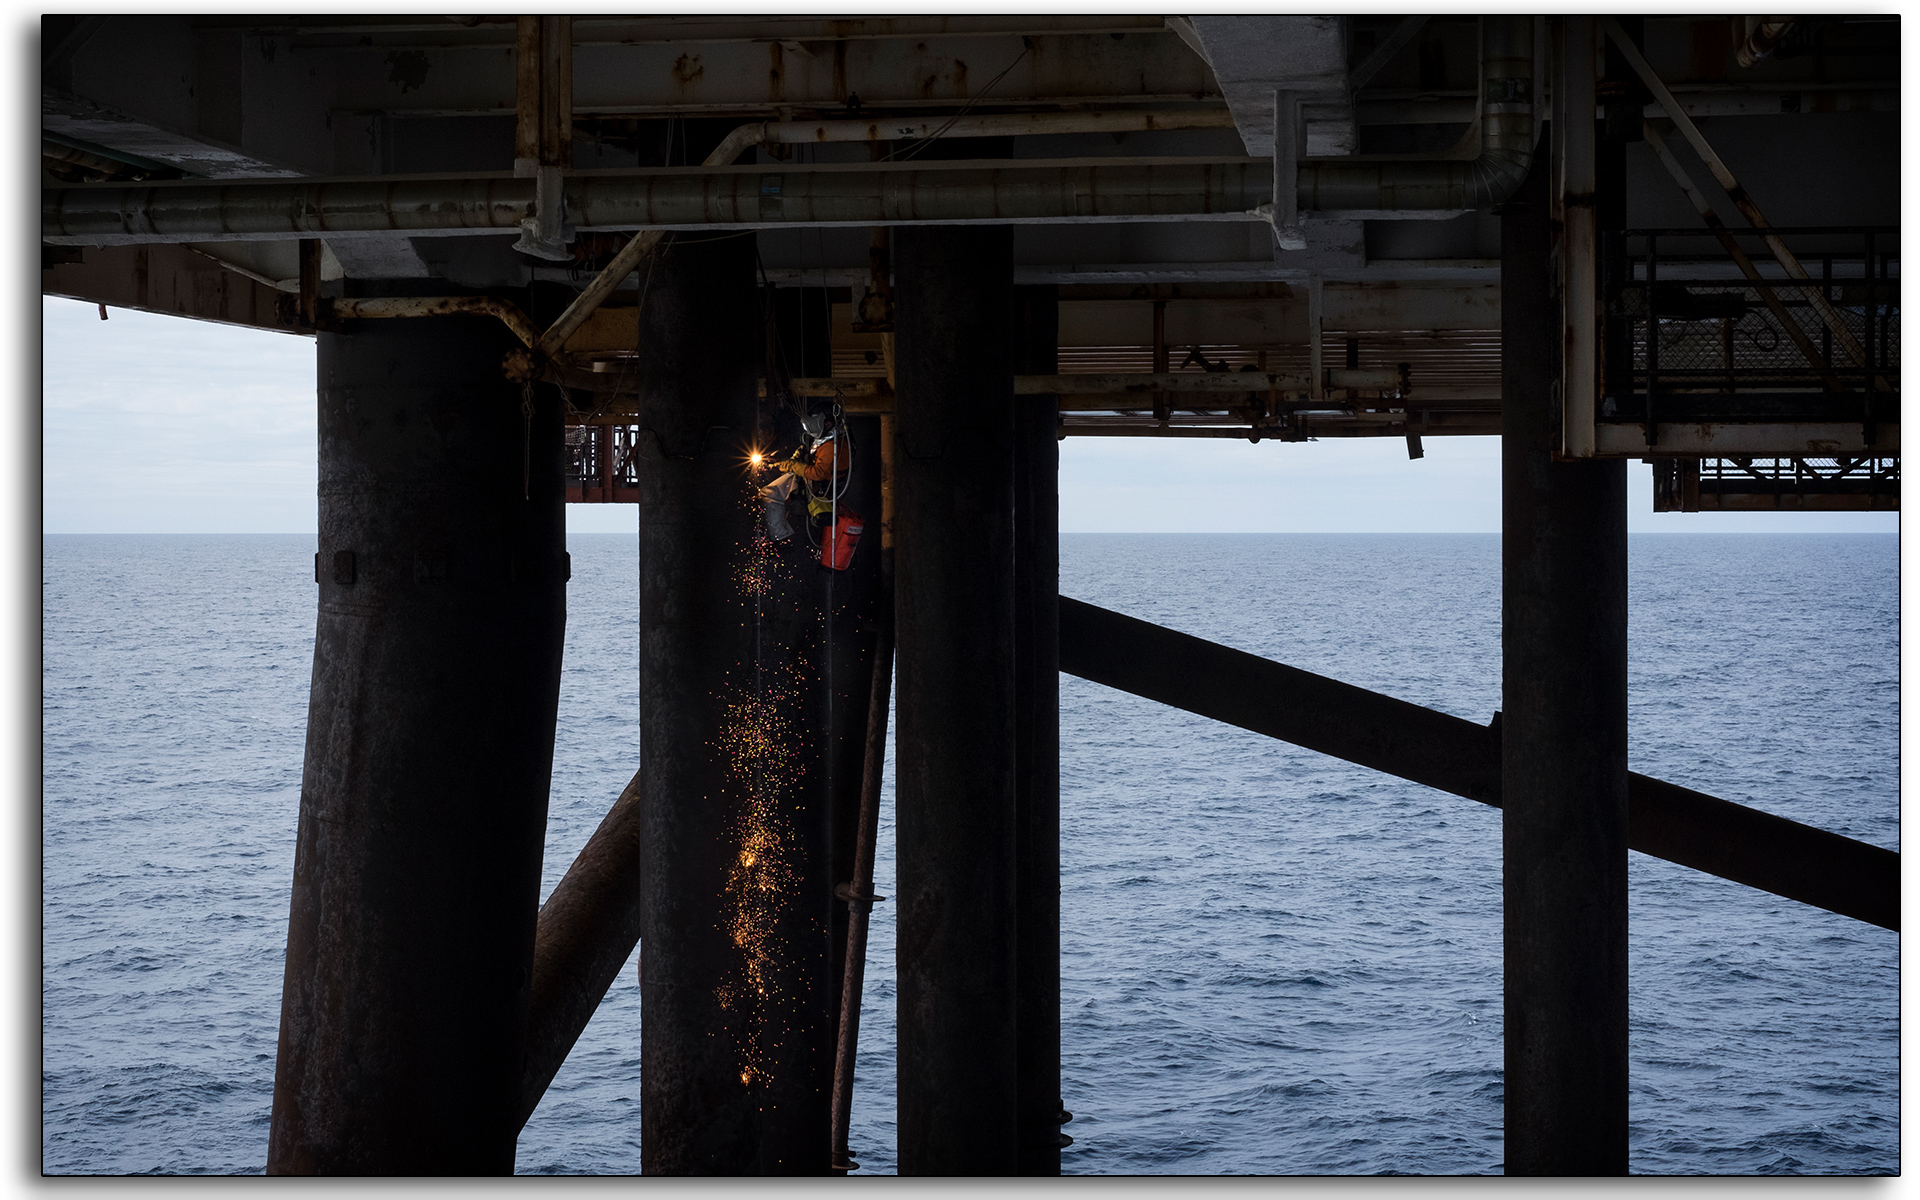 welding on the ropes, rope access, IRATA, abseiling, industrial, lee ramsden, BP Miller, oil and gas rig, north sea, offshore, employment, redundancies, oil and gas industry, BP, Petrofac.jpg